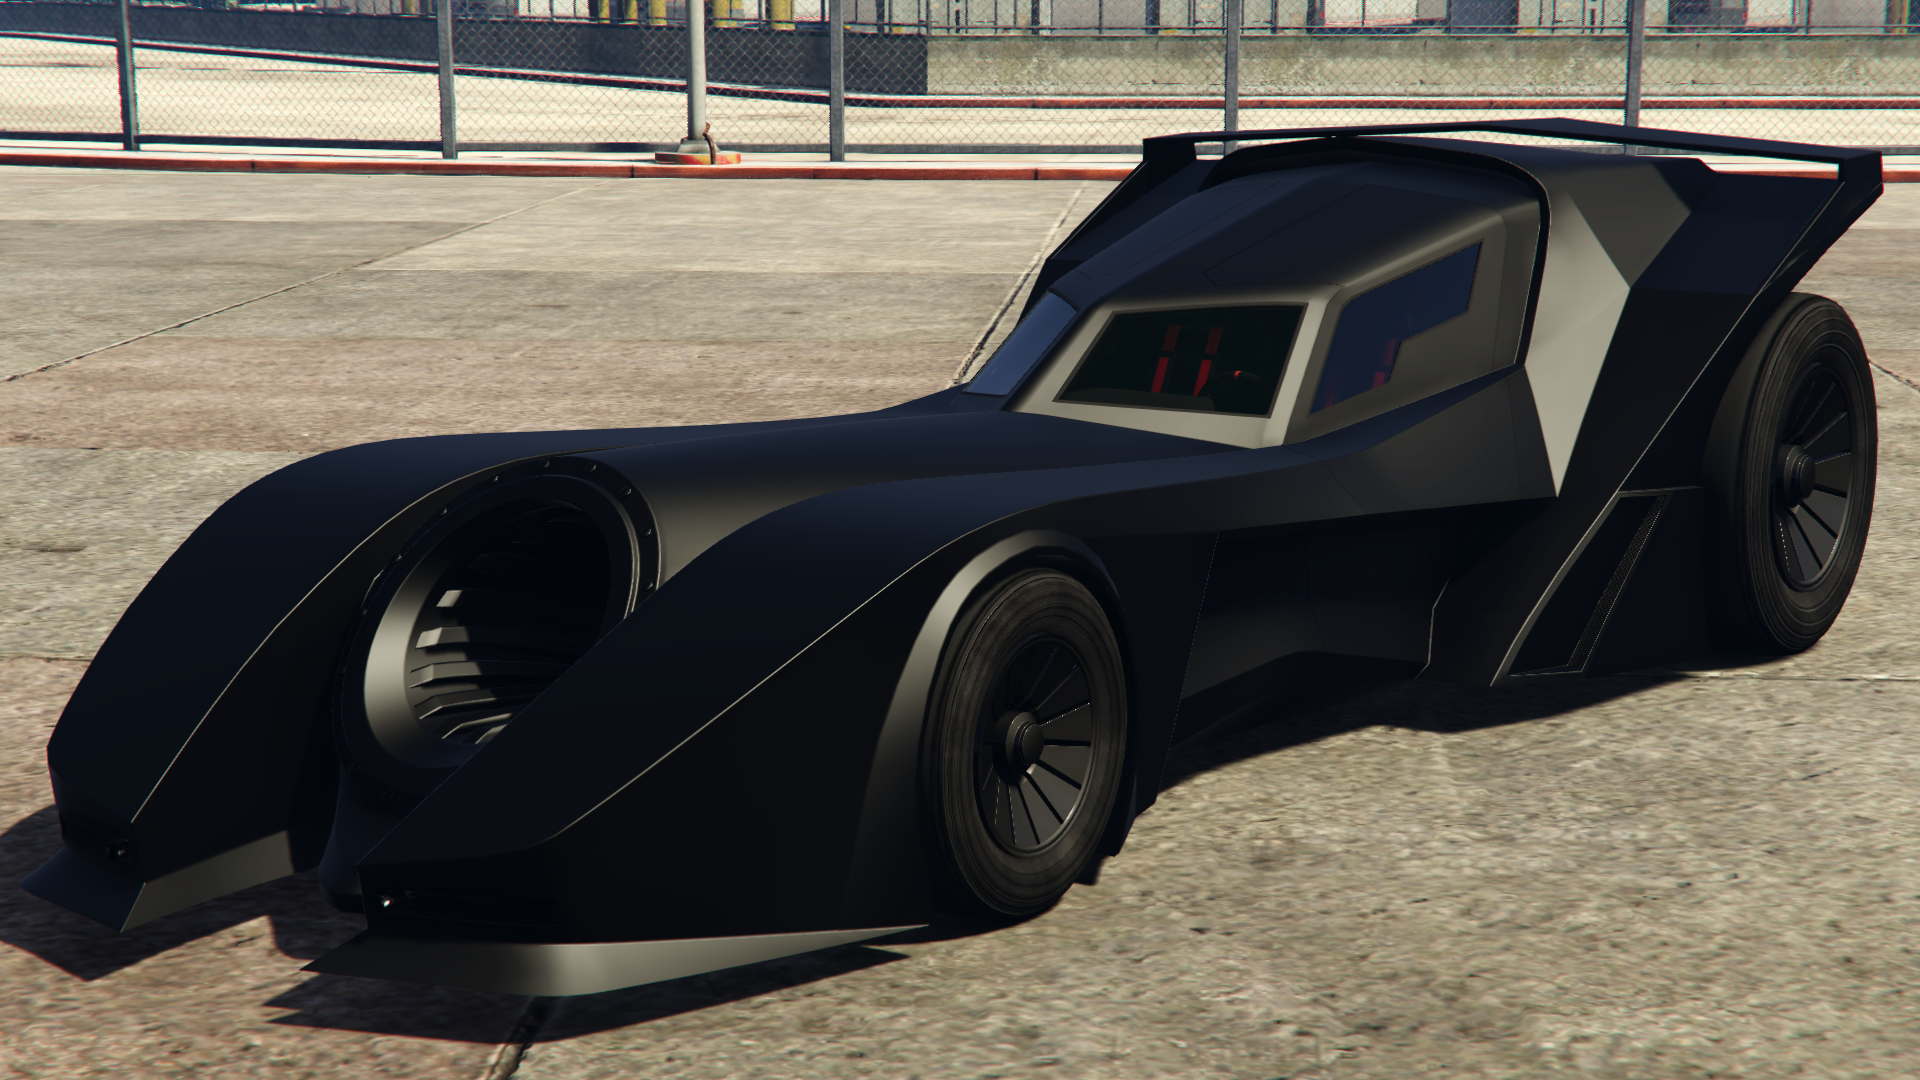 gta 5 special vehicles xbox one